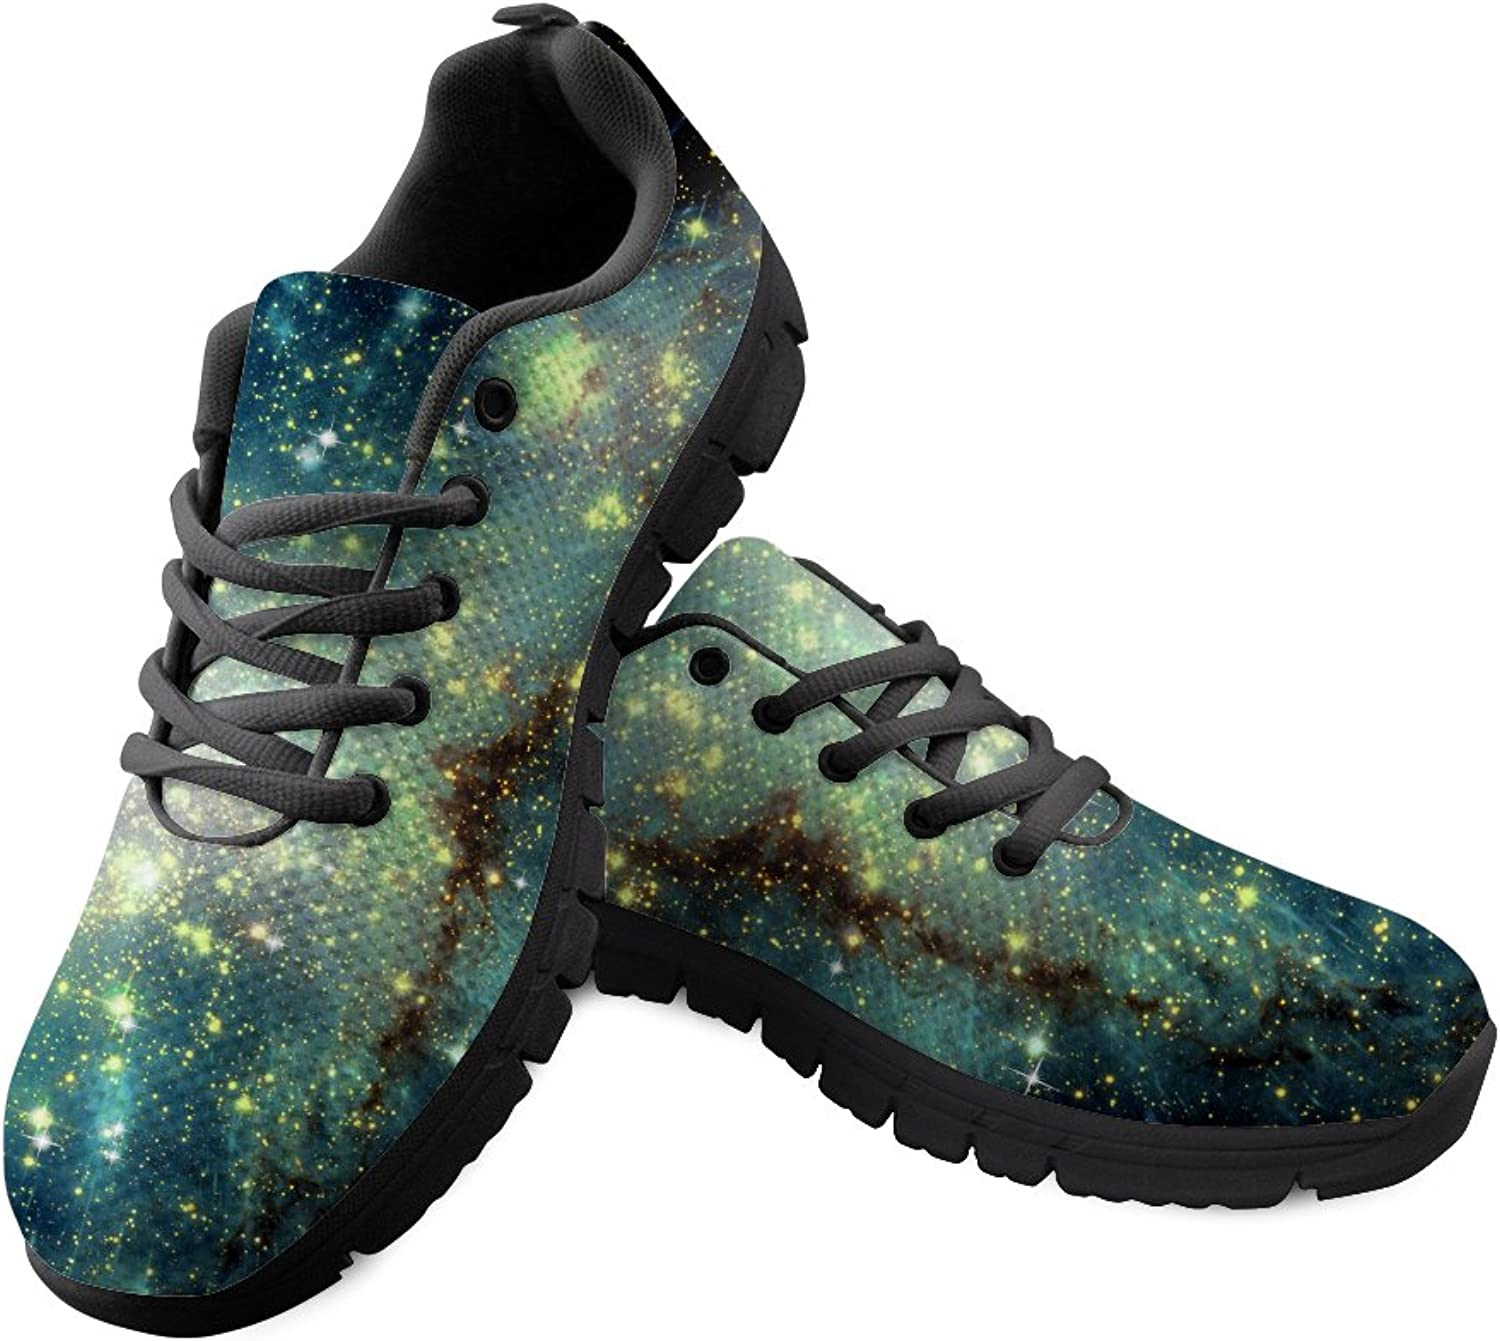 Doginthehole Ultralight Athletic Running shoes for Women Stylish Flat Walking Sneakers